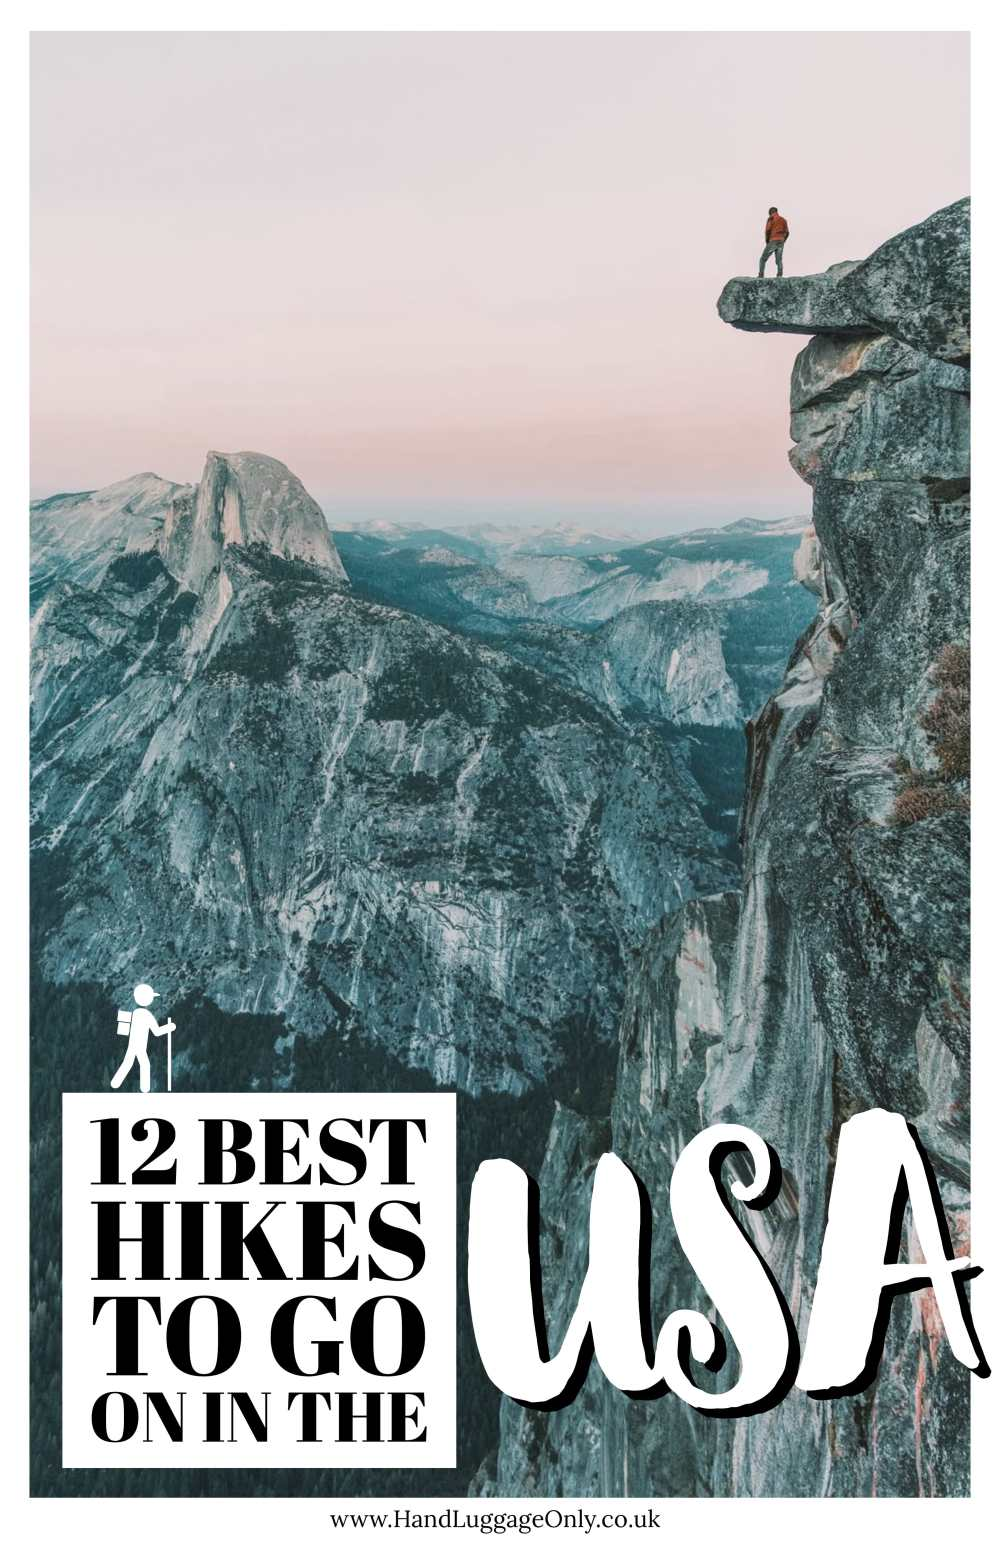 12 Of The Best Hikes In The USA To Explore (1)